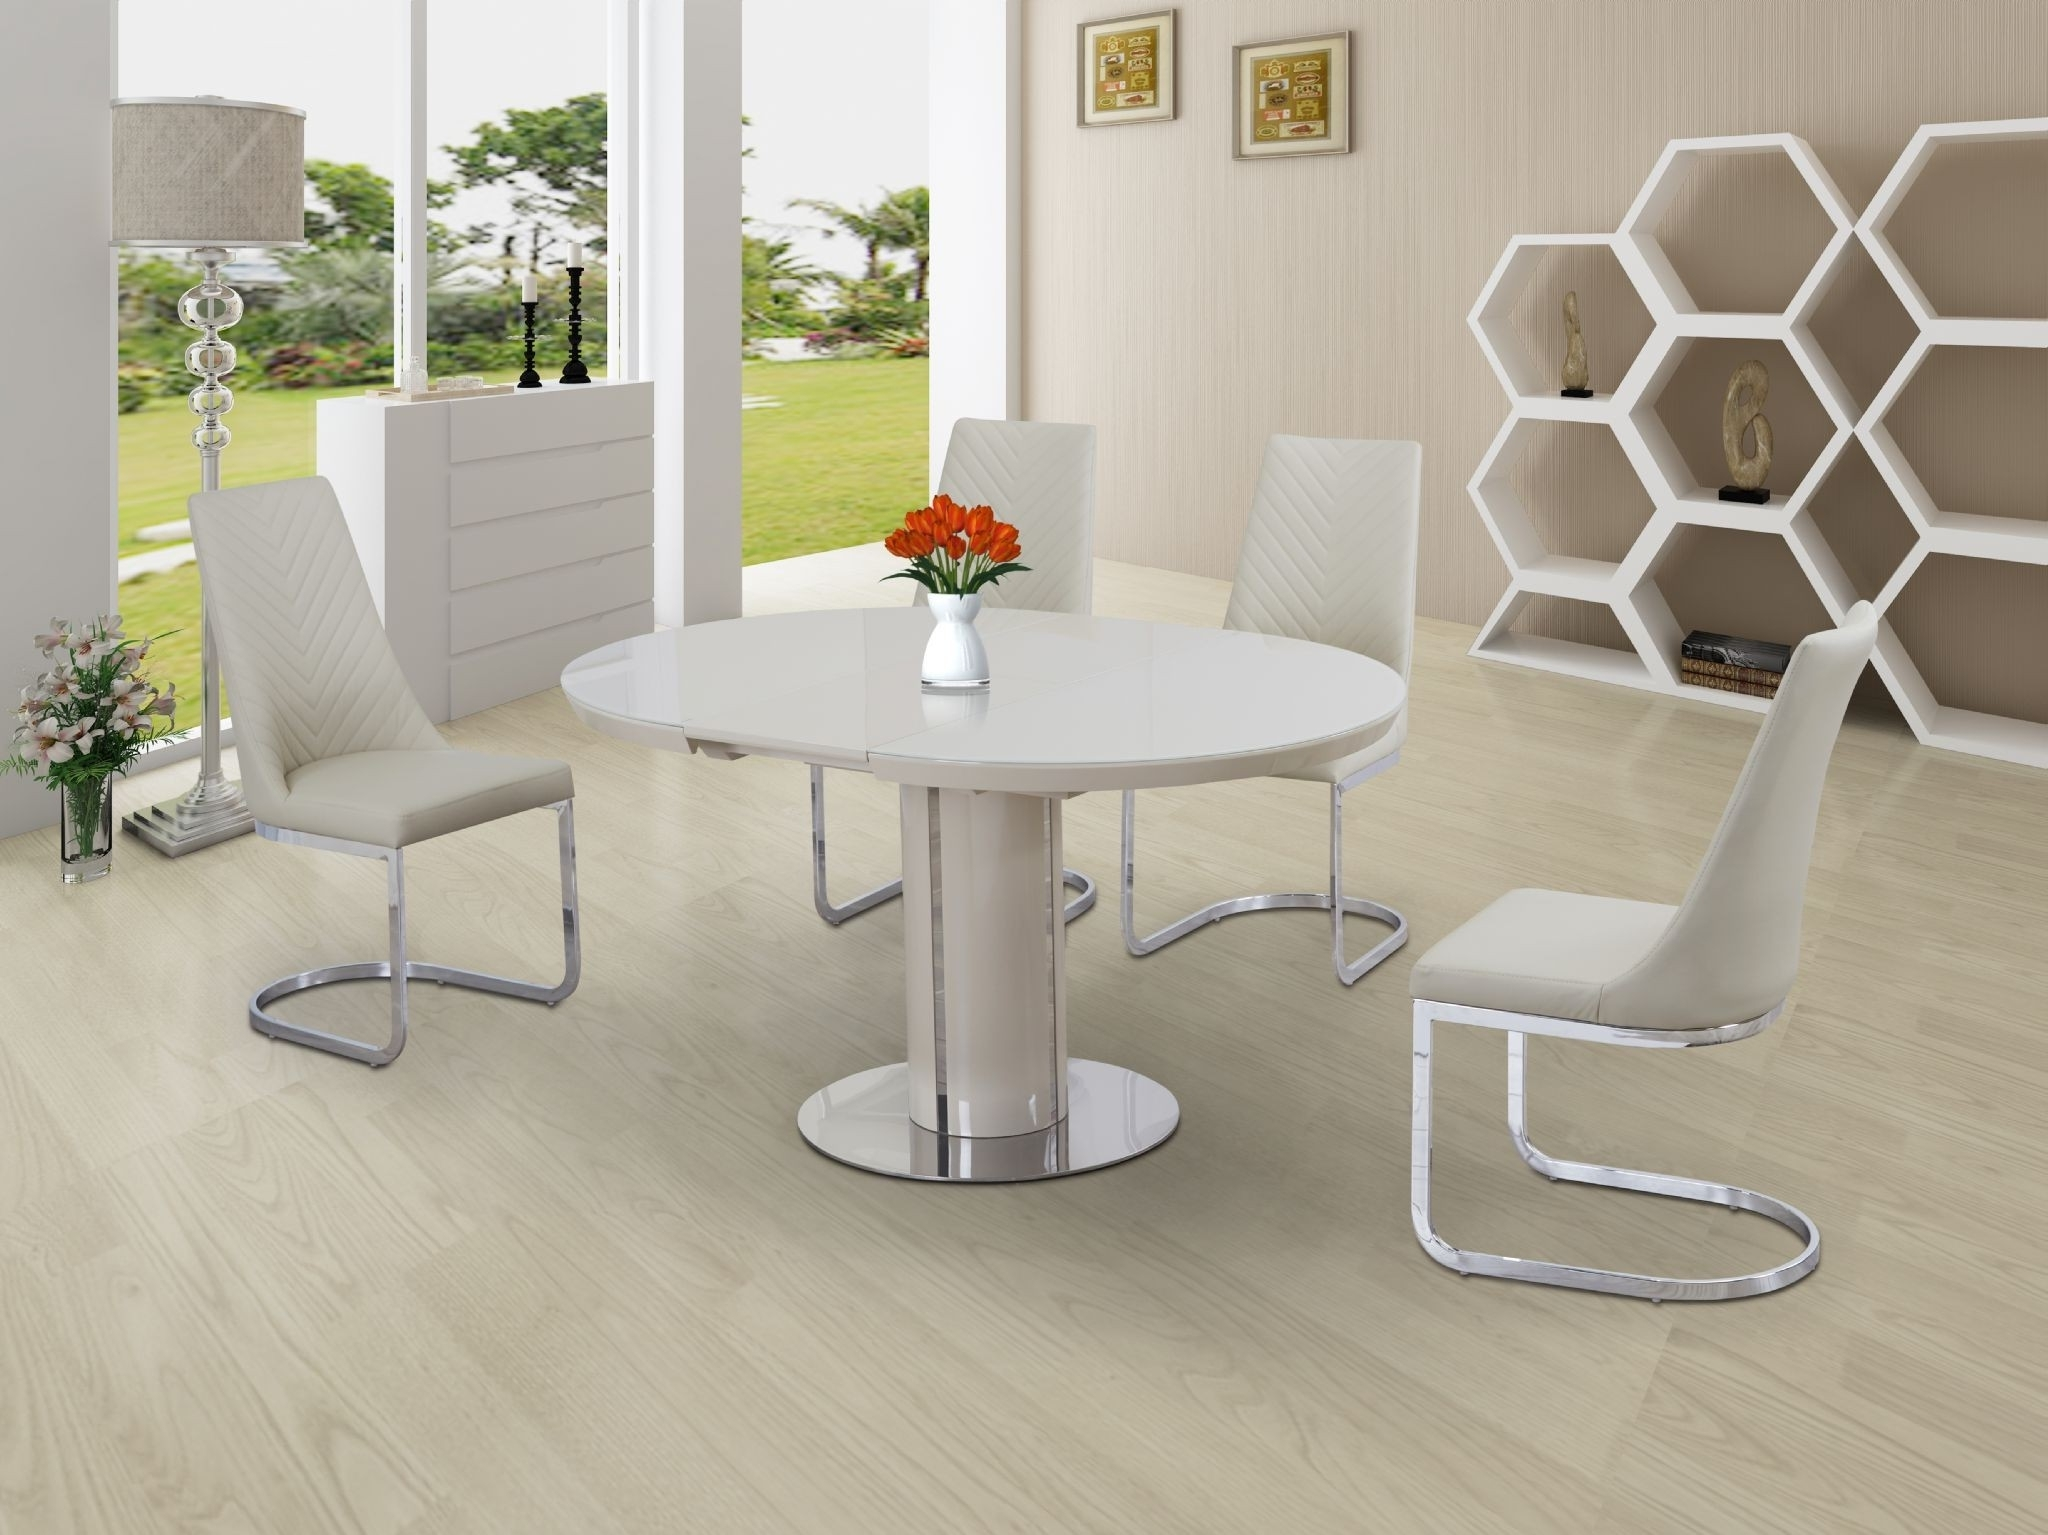 Most Recently Released Buy Annular Cream High Gloss Extending Dining Table Pertaining To Large White Gloss Dining Tables (Gallery 5 of 25)